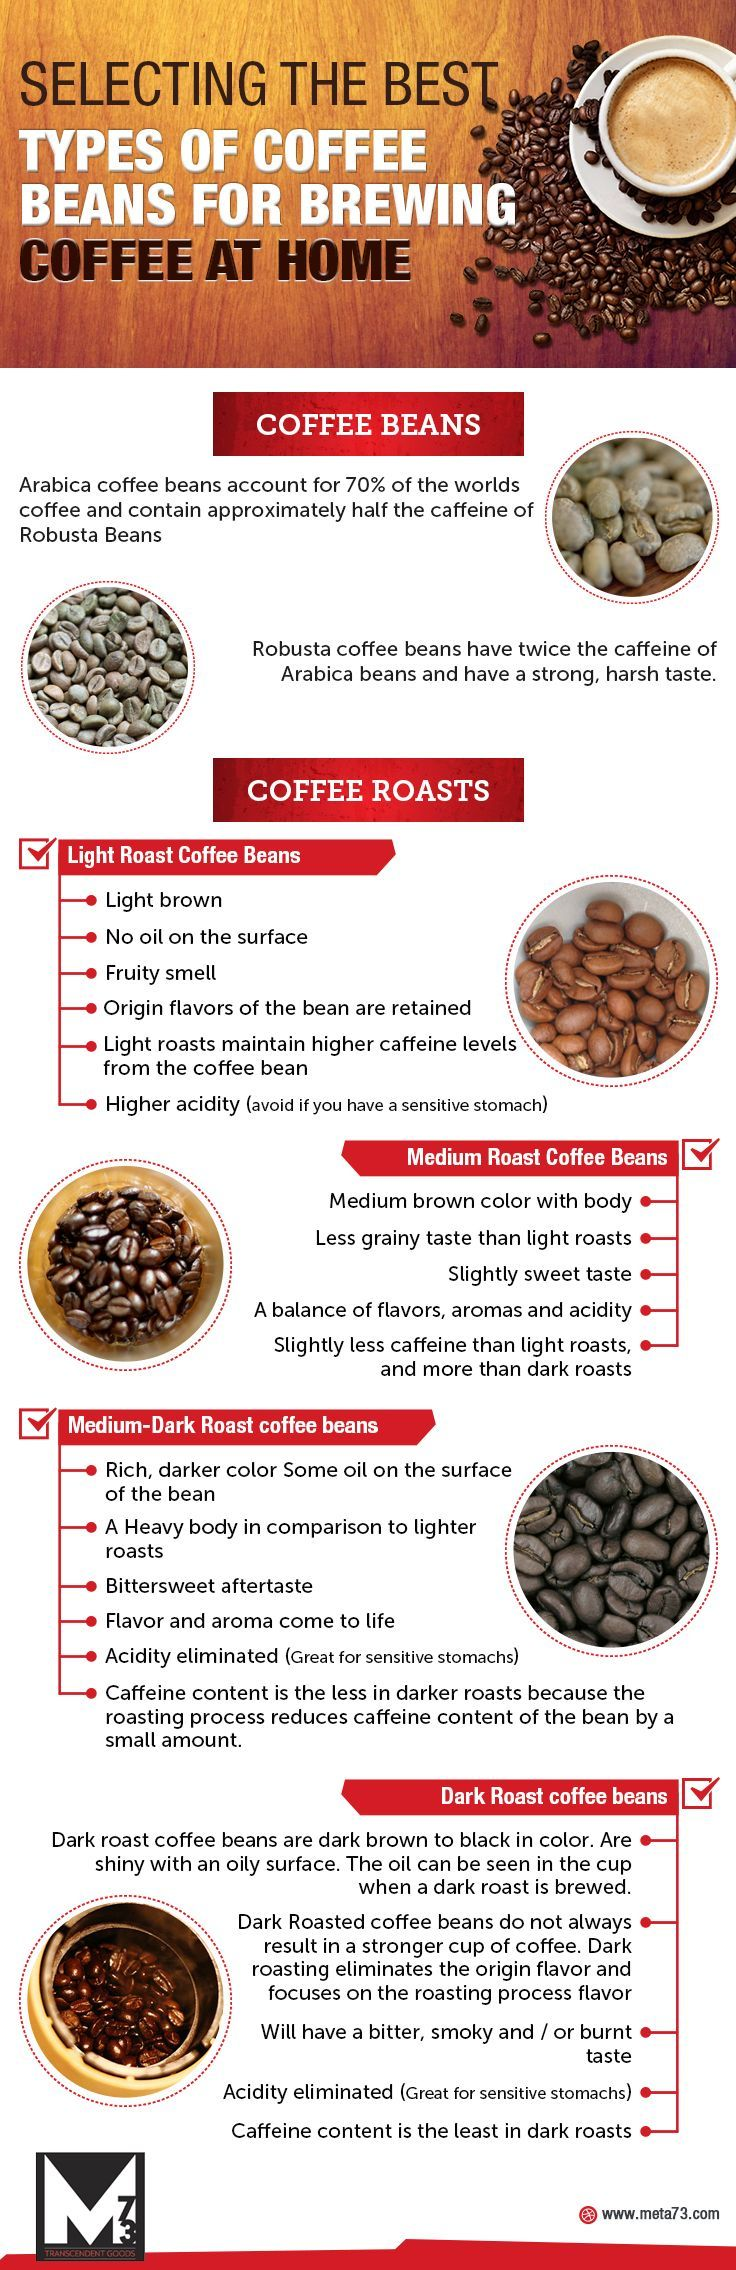 Coffee Roasts Guide to Great #Coffee from your favorite #Coffeelover